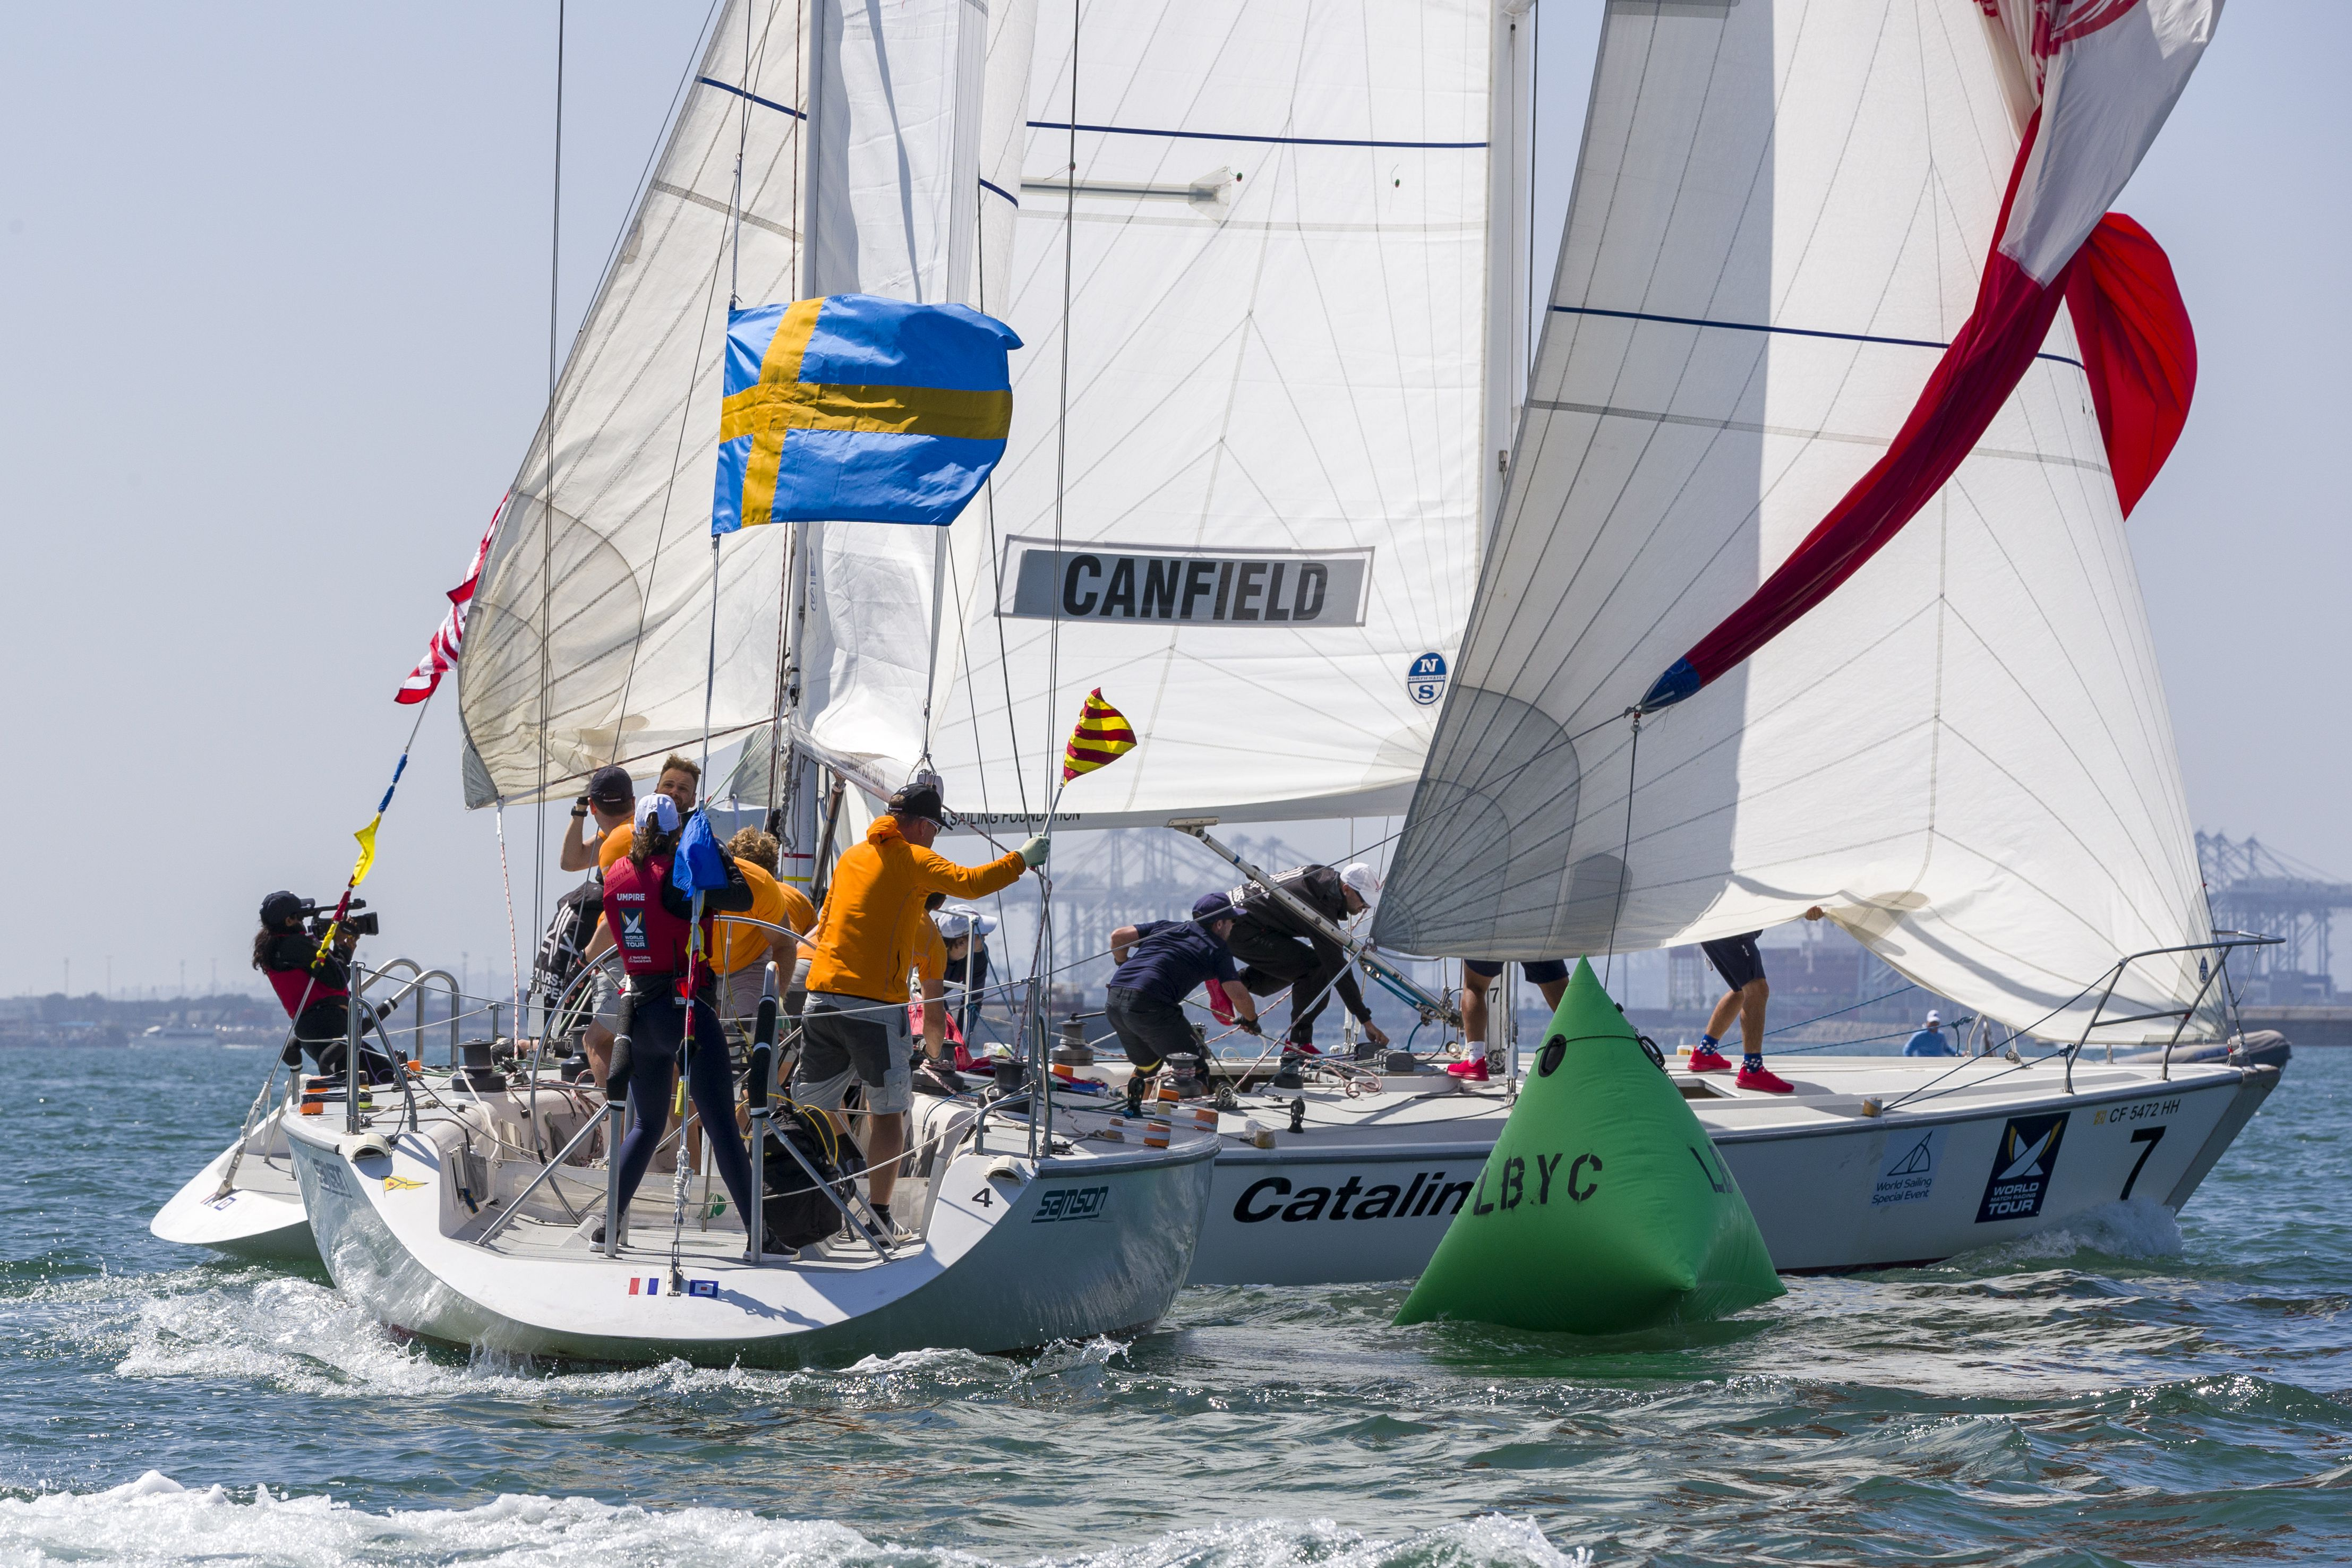 The Swedish squad led by skipper Johnie Berntsson, advanced to the finals but was swept in three races by Stars + Stripes, which got the better of the three starts.